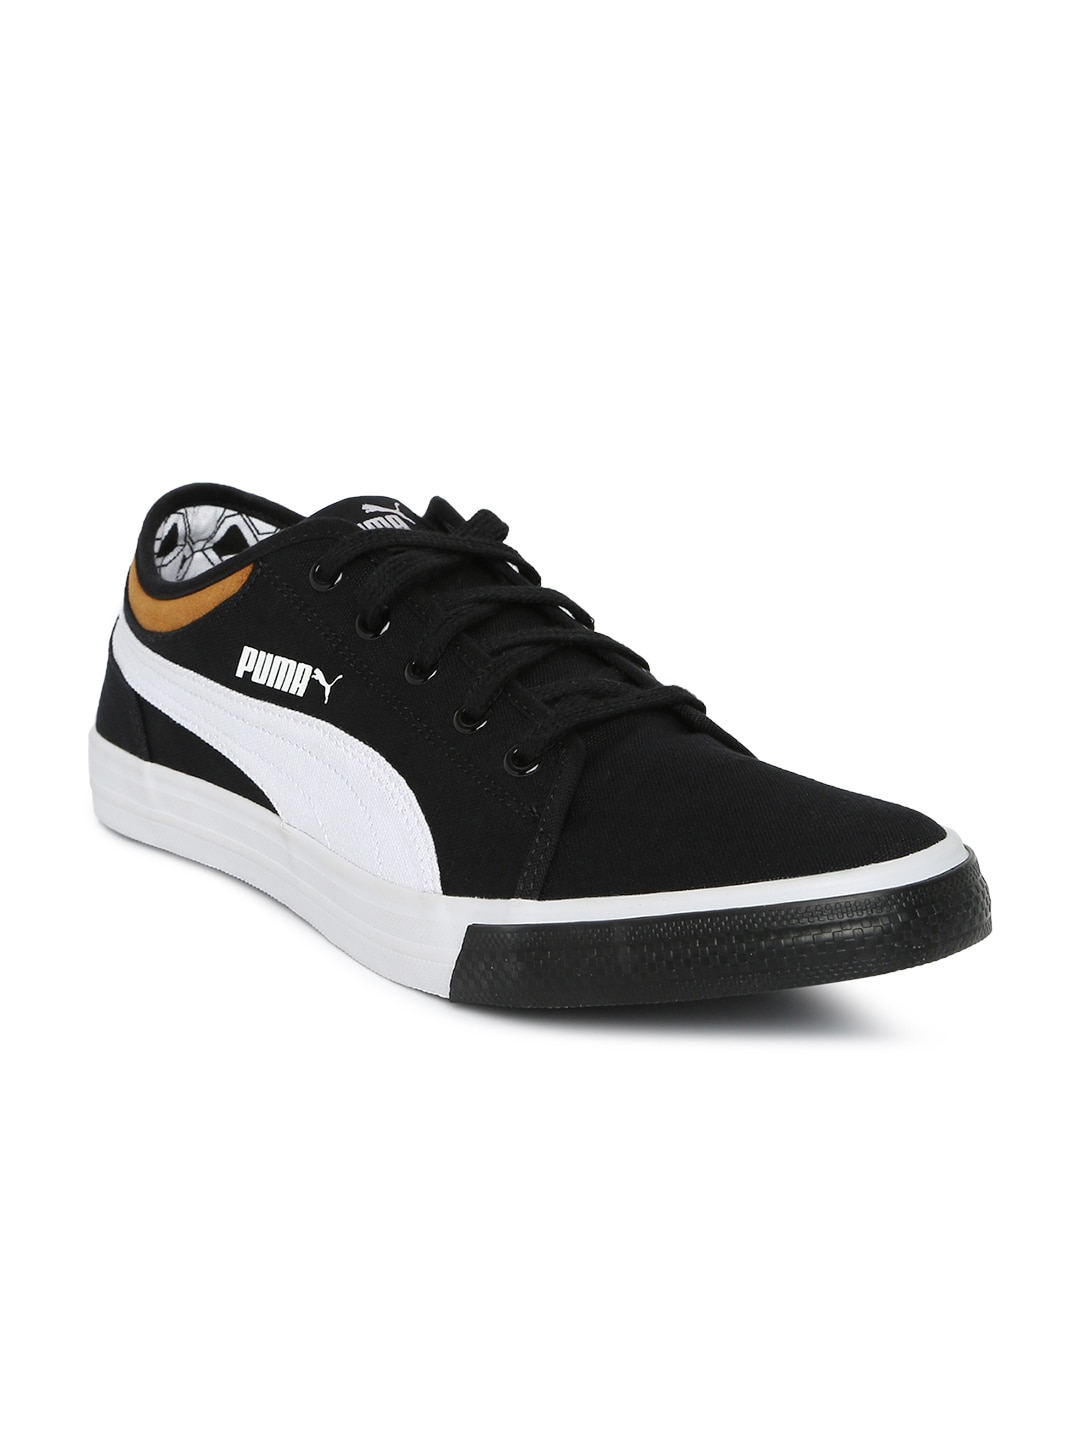 Puma Canvas Shoes - Buy Puma Canvas Shoes Online in India c8d986514